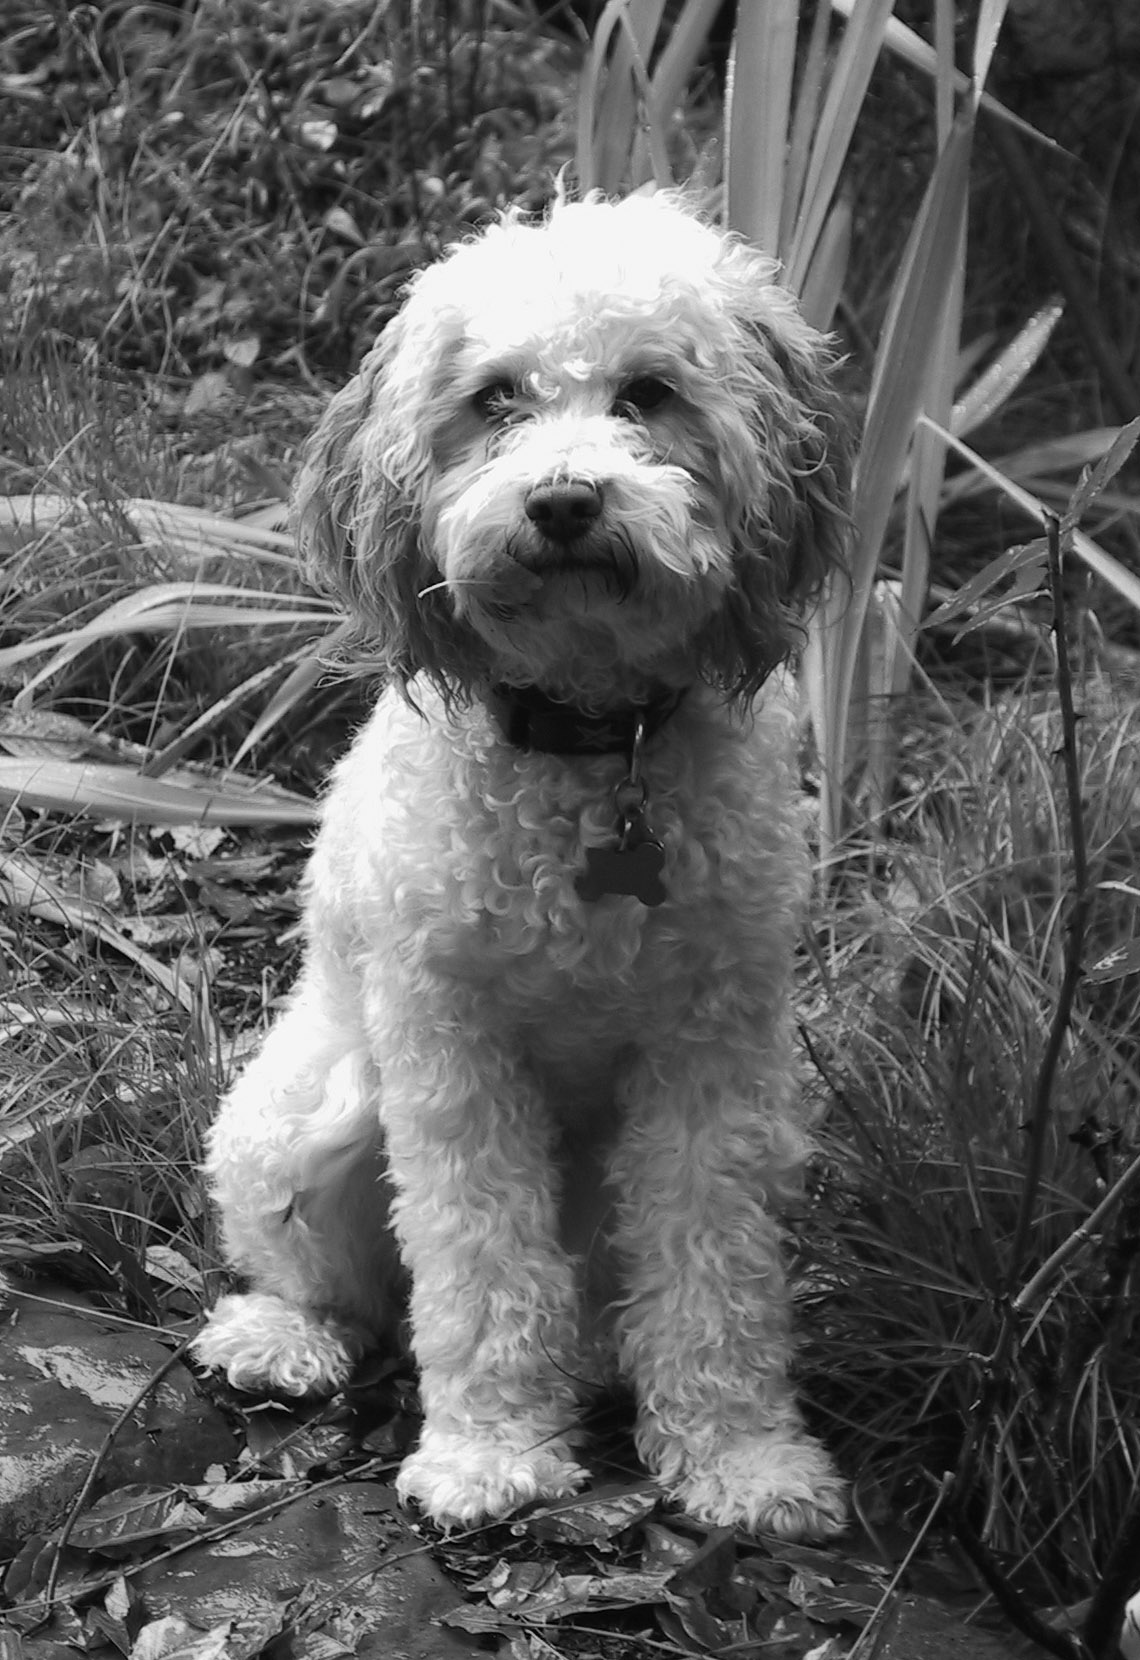 ziggy-with-leaf-in-the-garden-cropped-bw